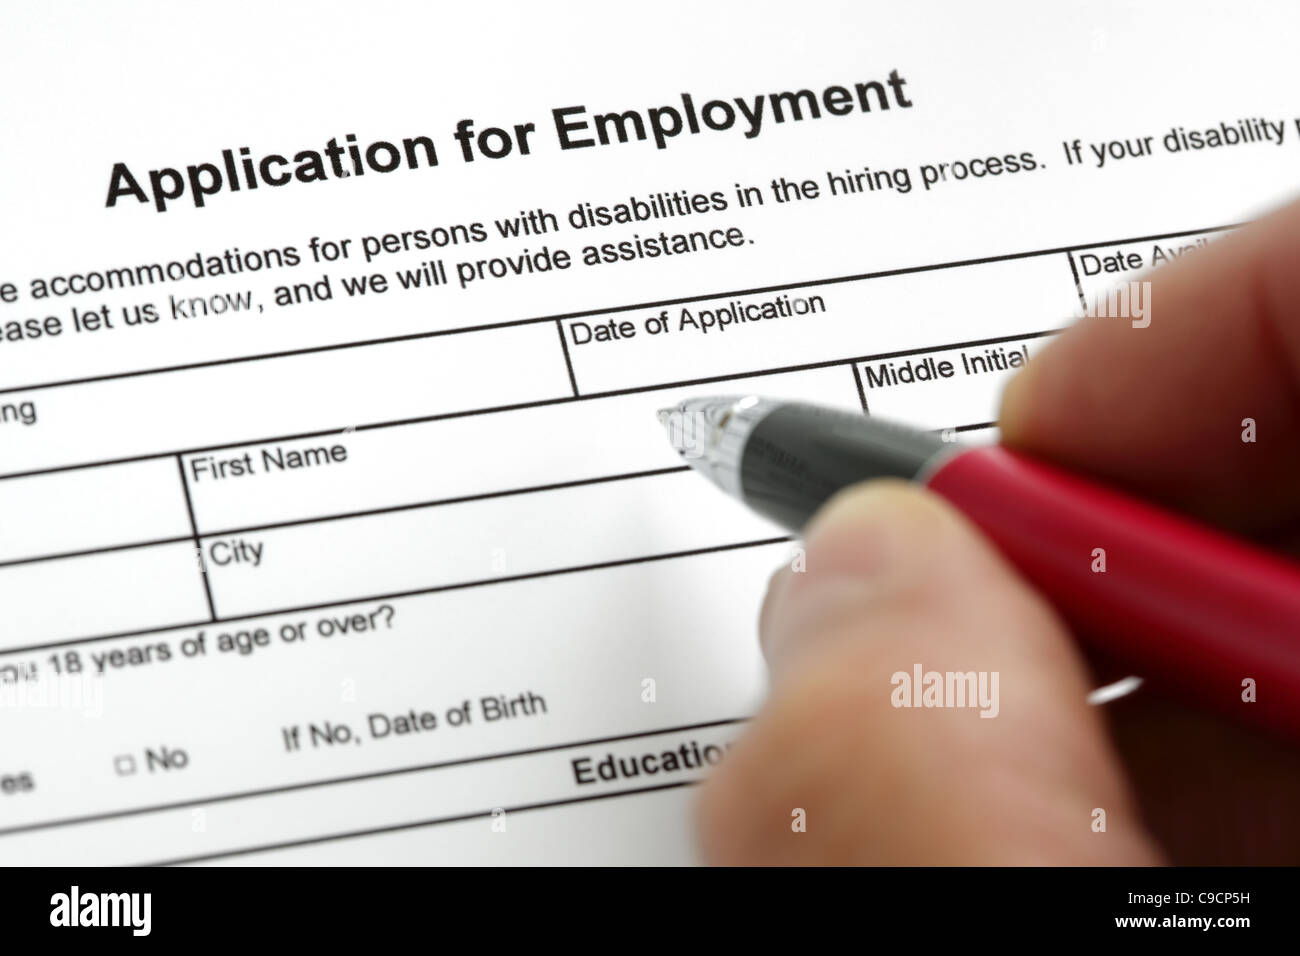 Application for employment - Stock Image